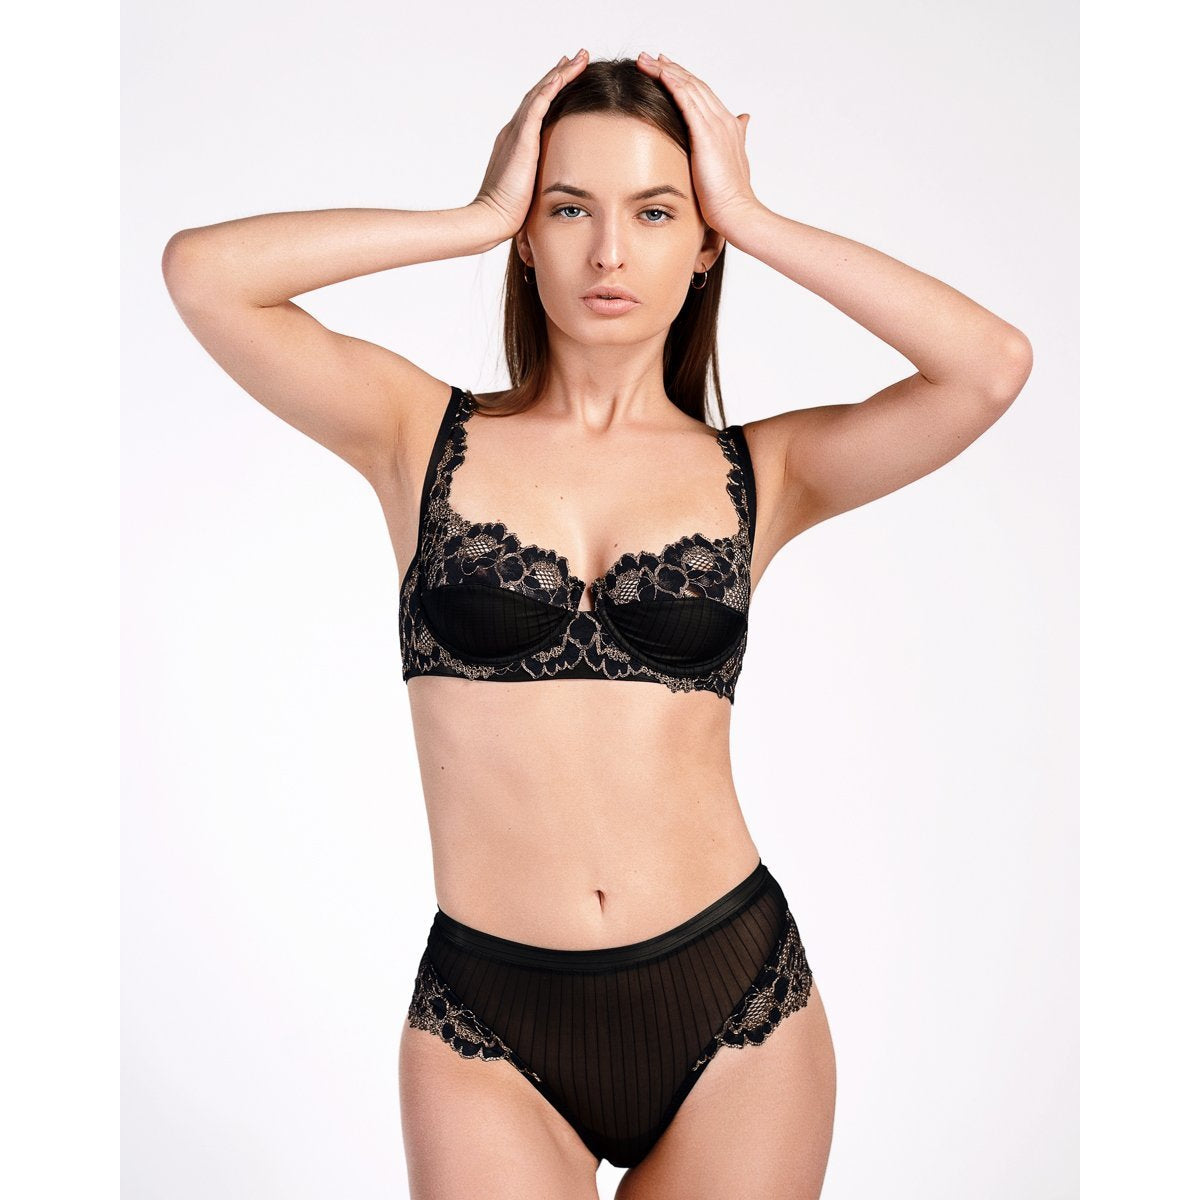 Blacky Bra-Lola Bra-HOUSE of BOTTA